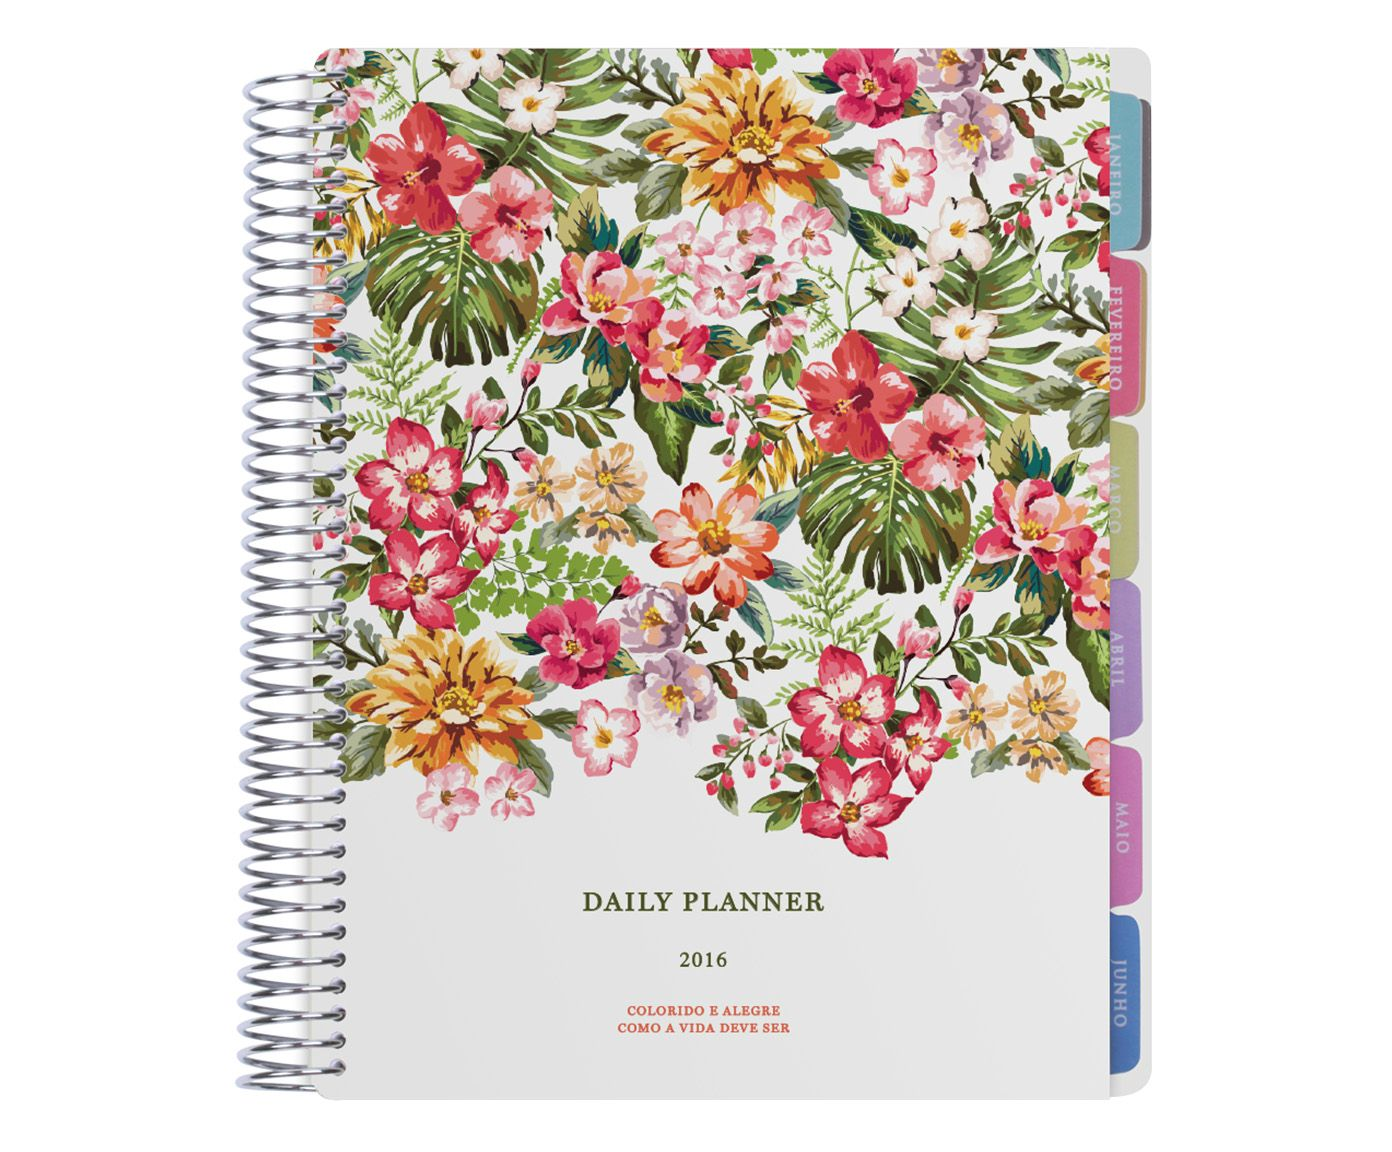 Daily Planner Ladylike - 21x23,5cm   Westwing.com.br